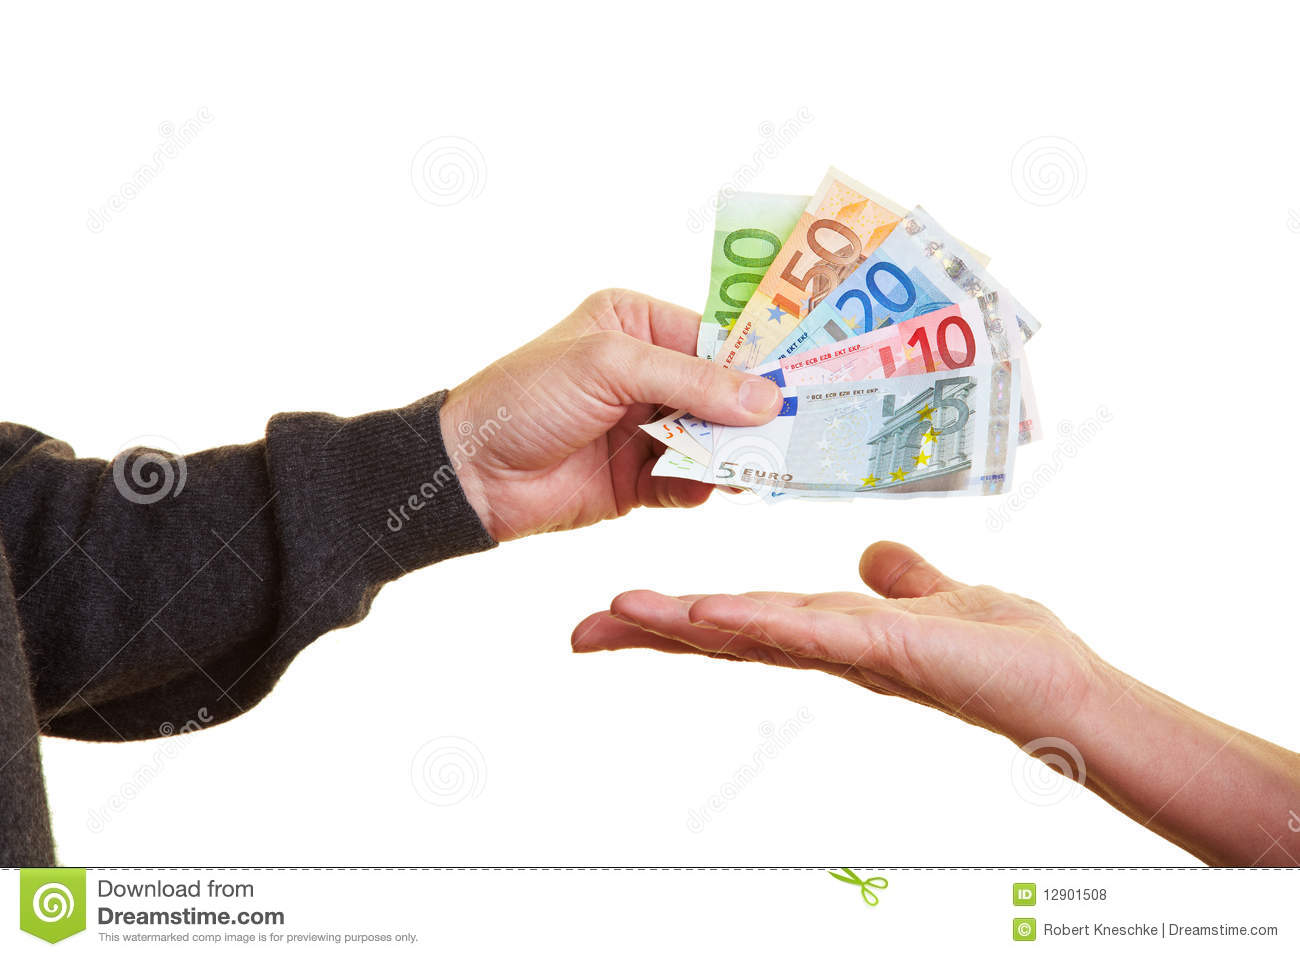 Putting banknotes on hand